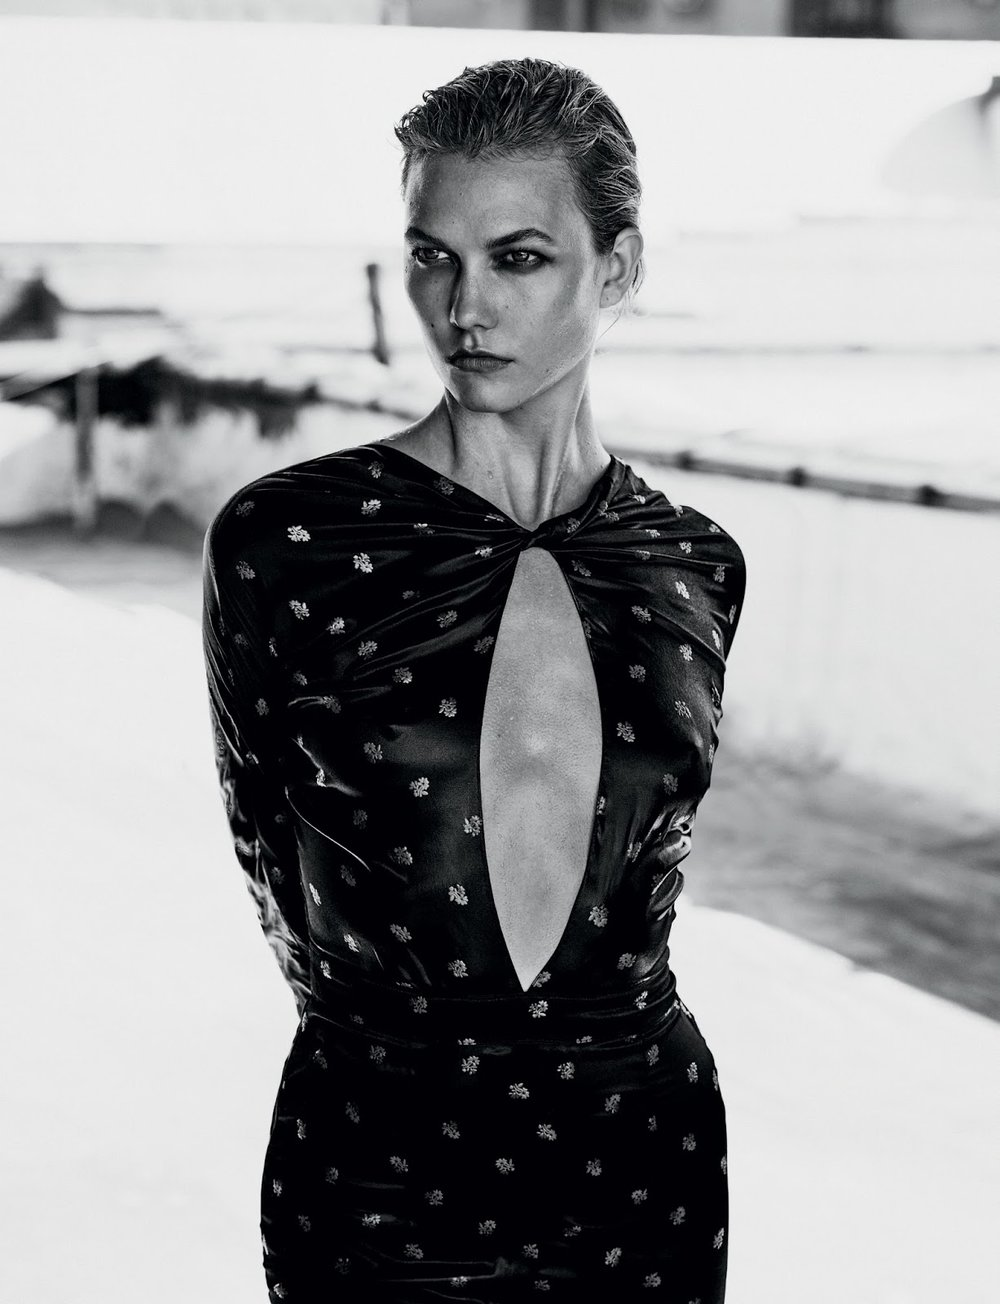 Vogue Mexico October 2016 - karlie-kloss-chris-colls- (5).jpg